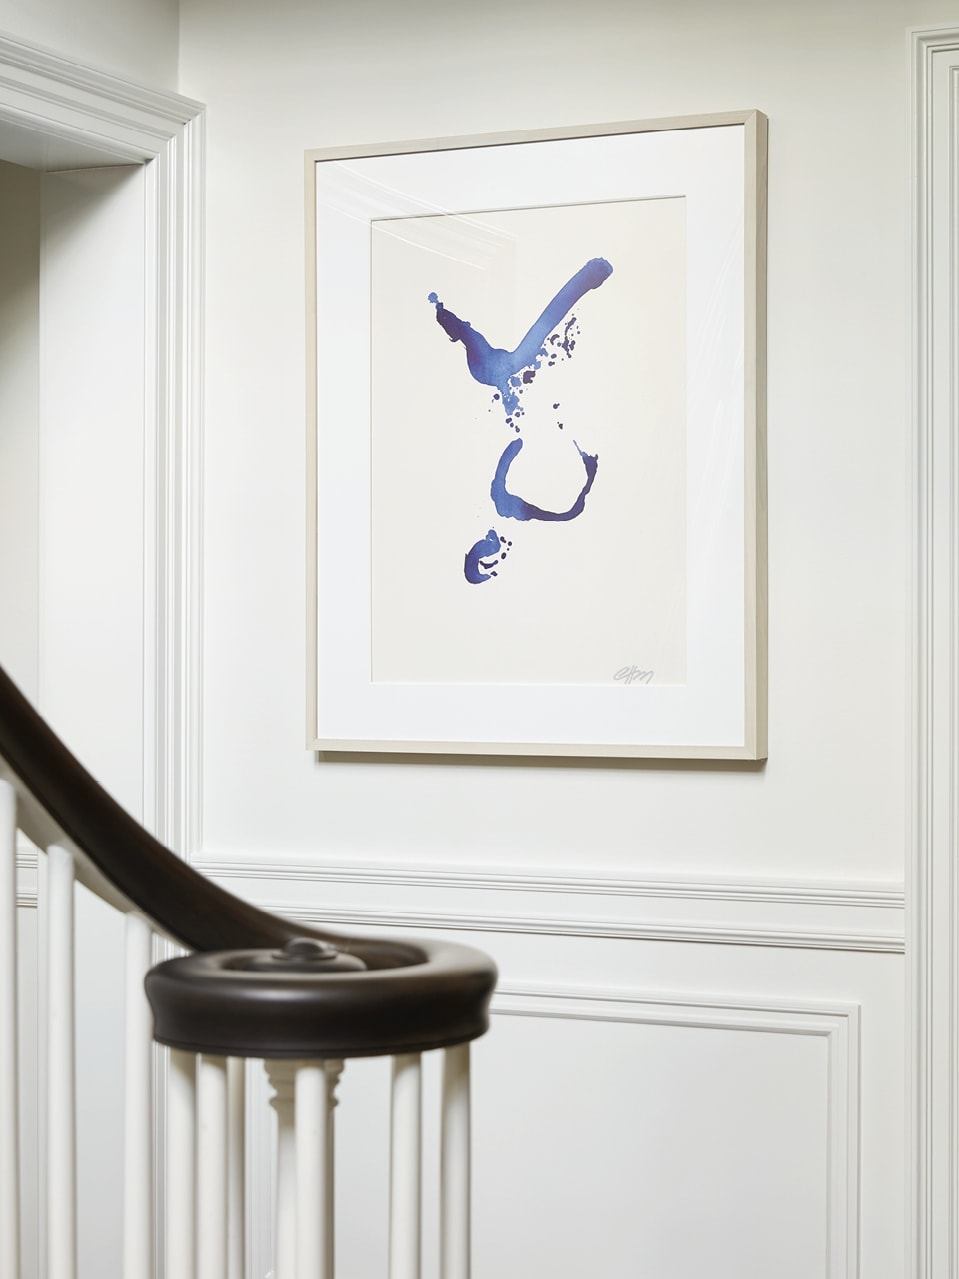 A beautiful painting above the stairway bannister